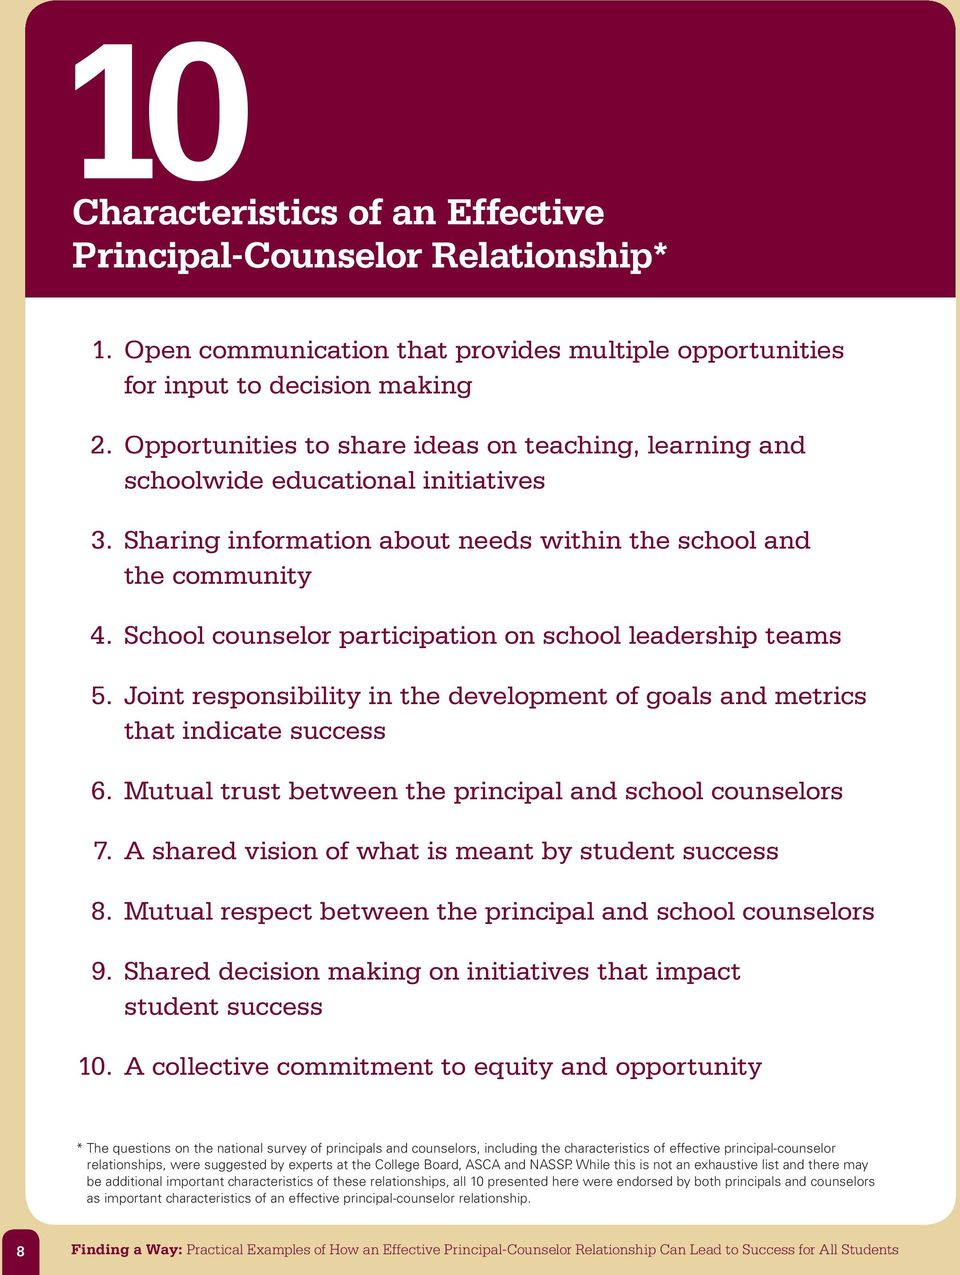 School counselor participation on school leadership teams 5. Joint responsibility in the development of goals and metrics that indicate success 6.